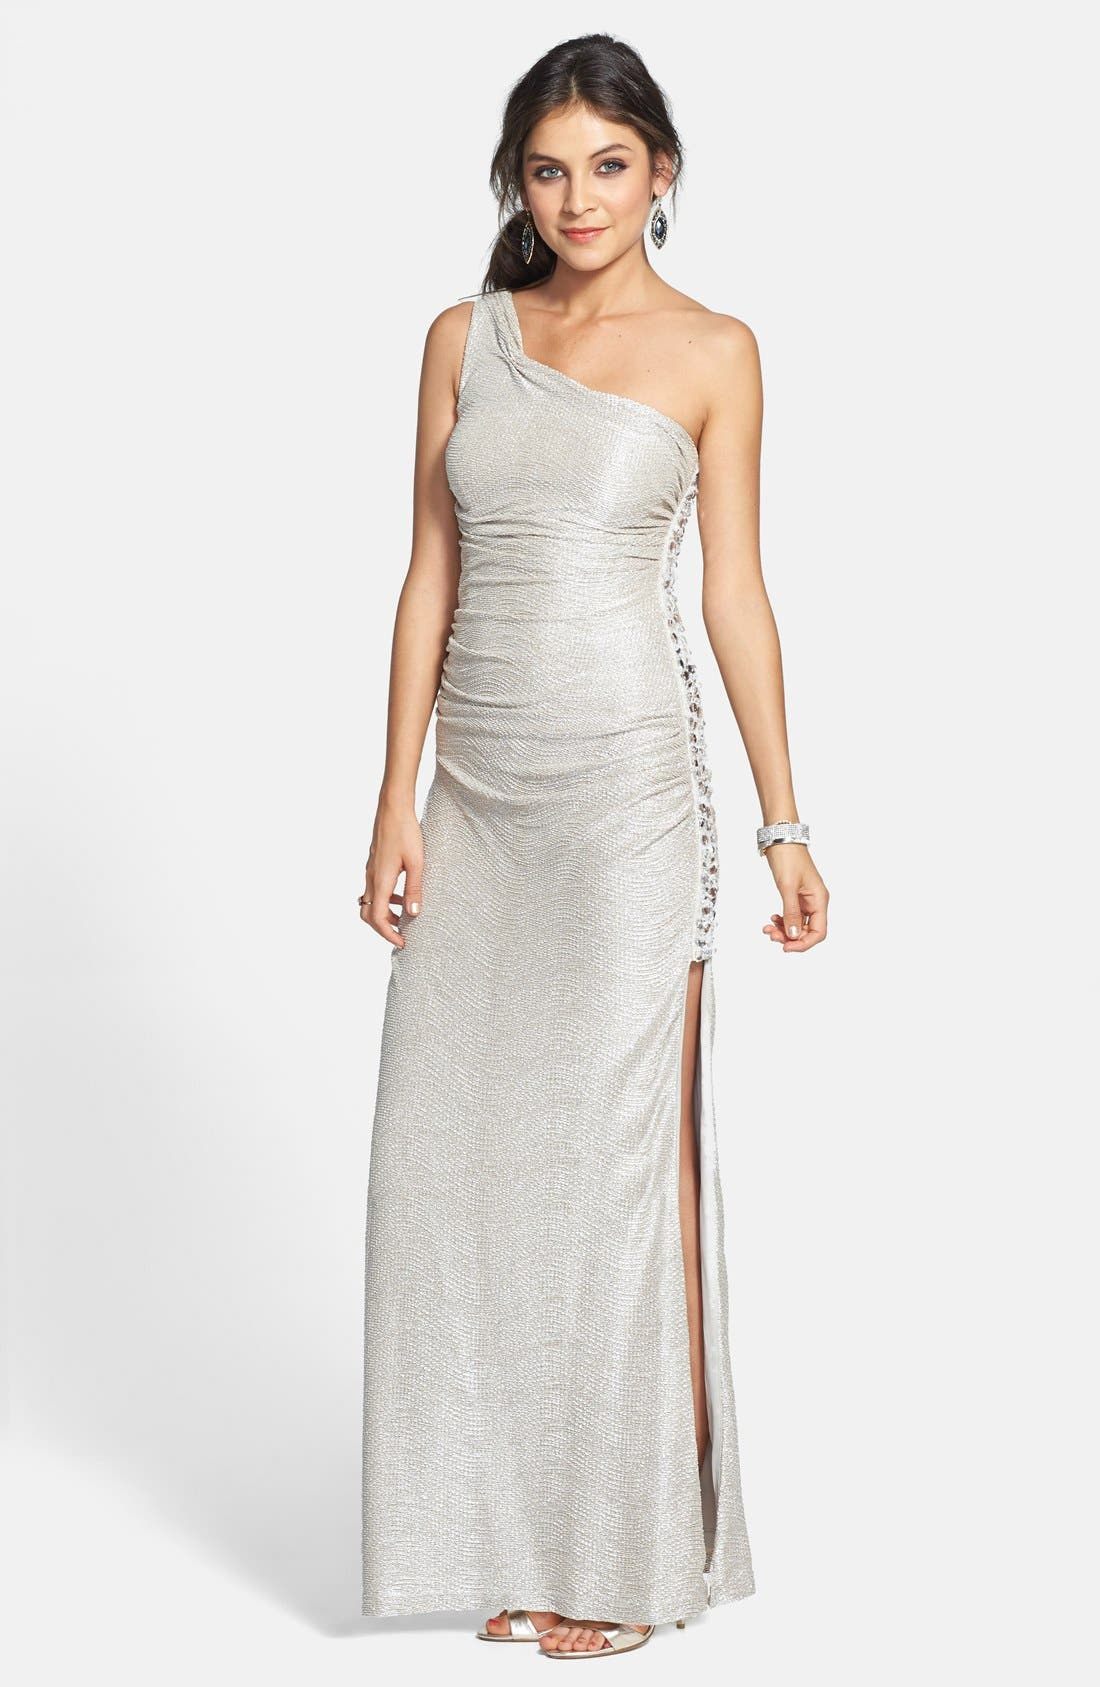 Alternate Image 1 Selected - Hailey by Adrianna Papell Embellished Textured Metallic One Shoulder Gown